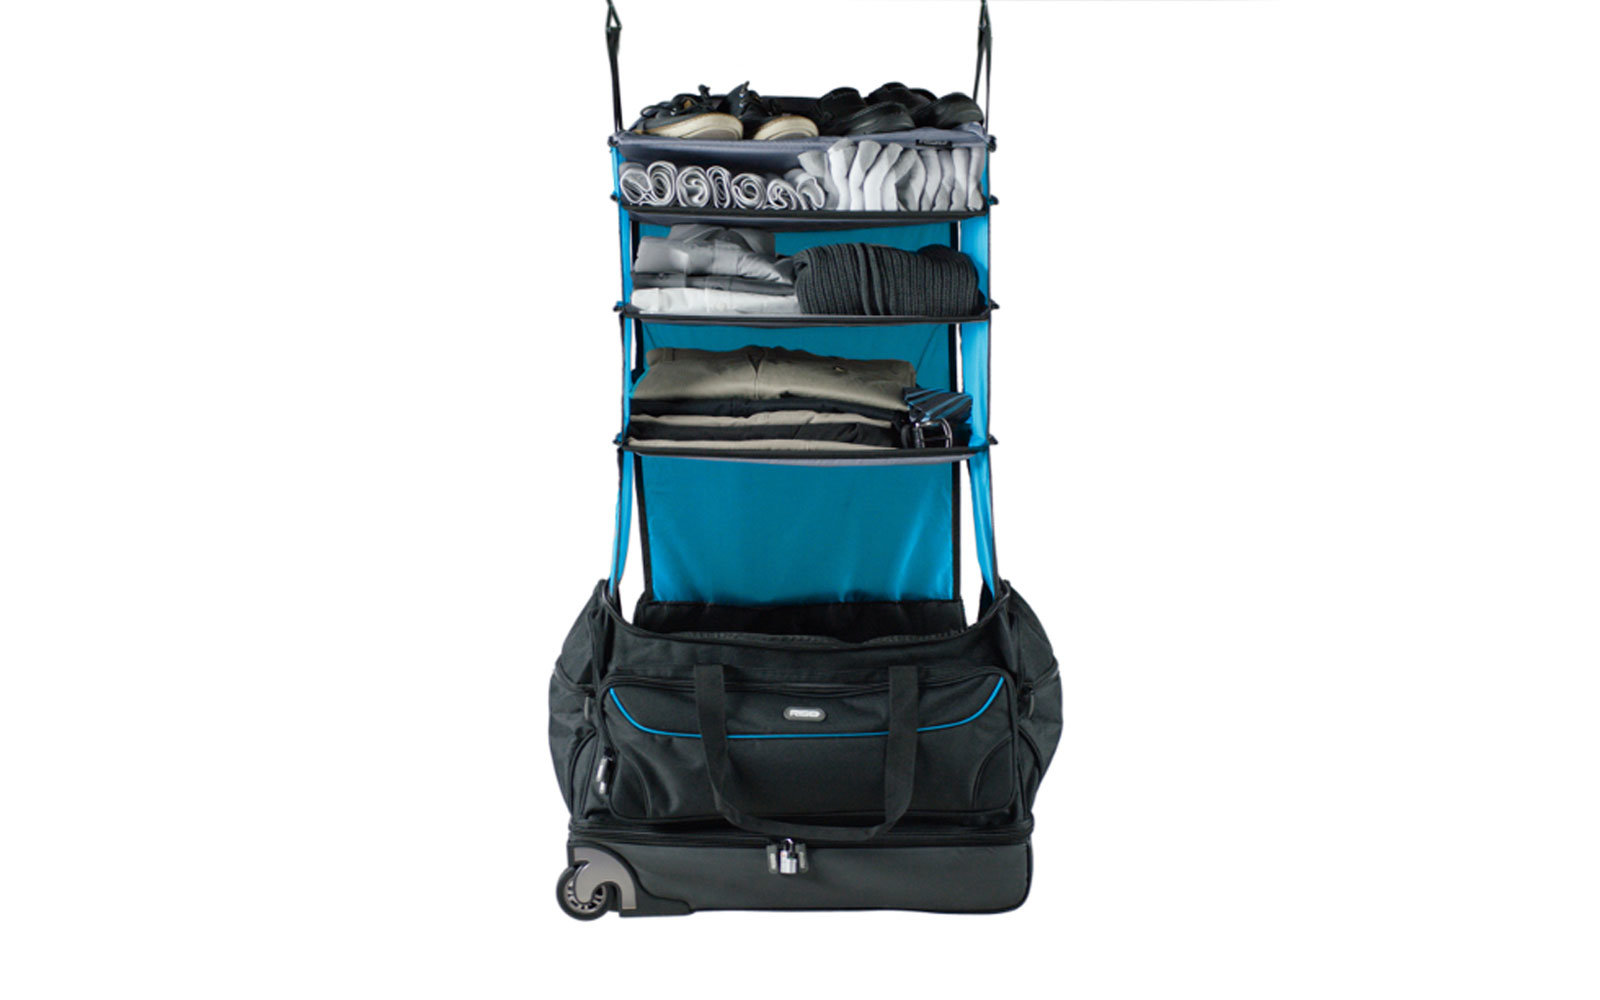 Ahalife Shelf suitcase